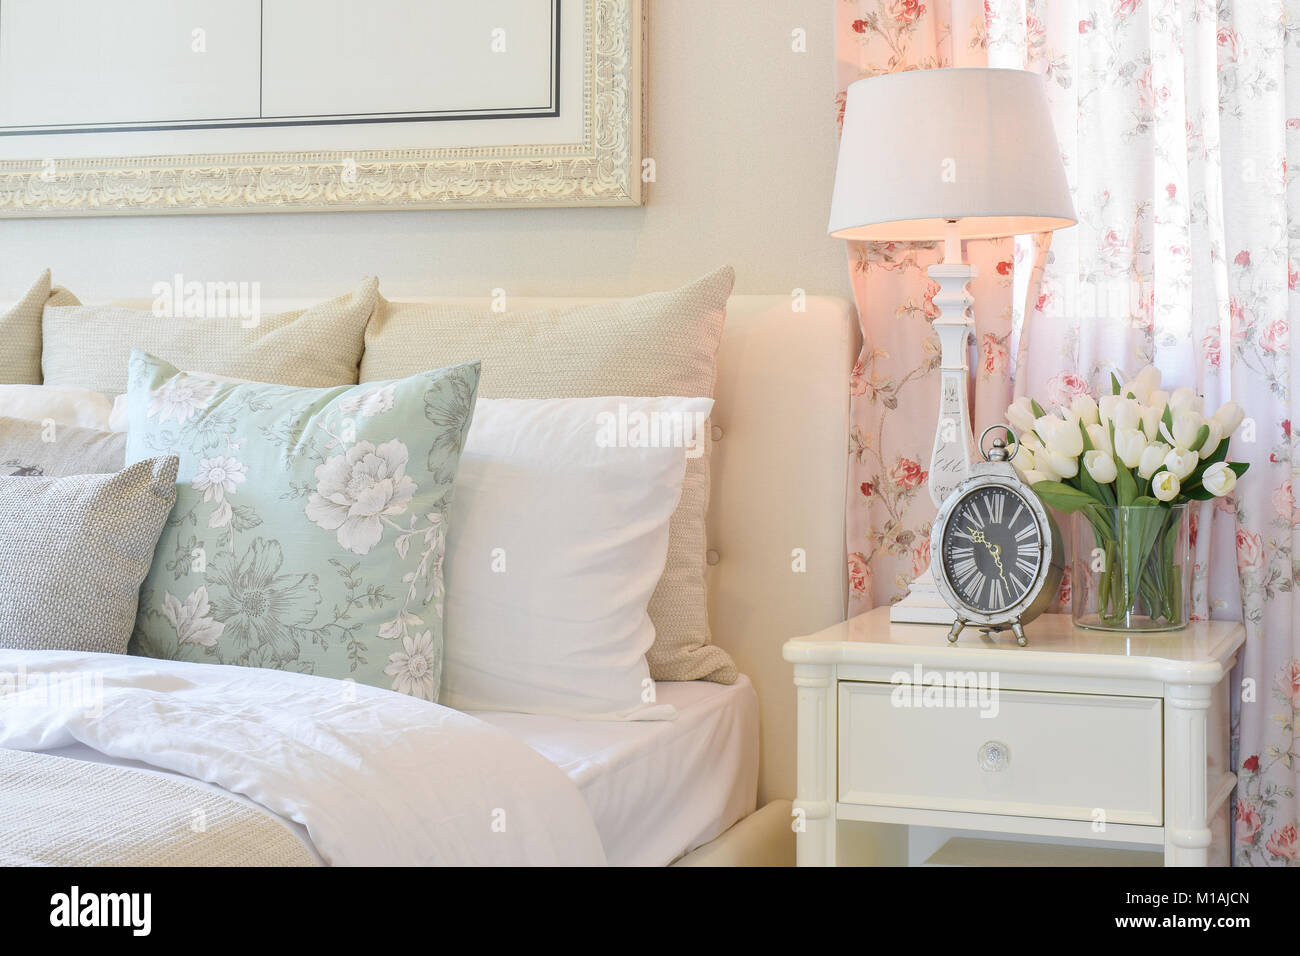 vintage bedroom interior with decorative table lamp, alarm clock and ...